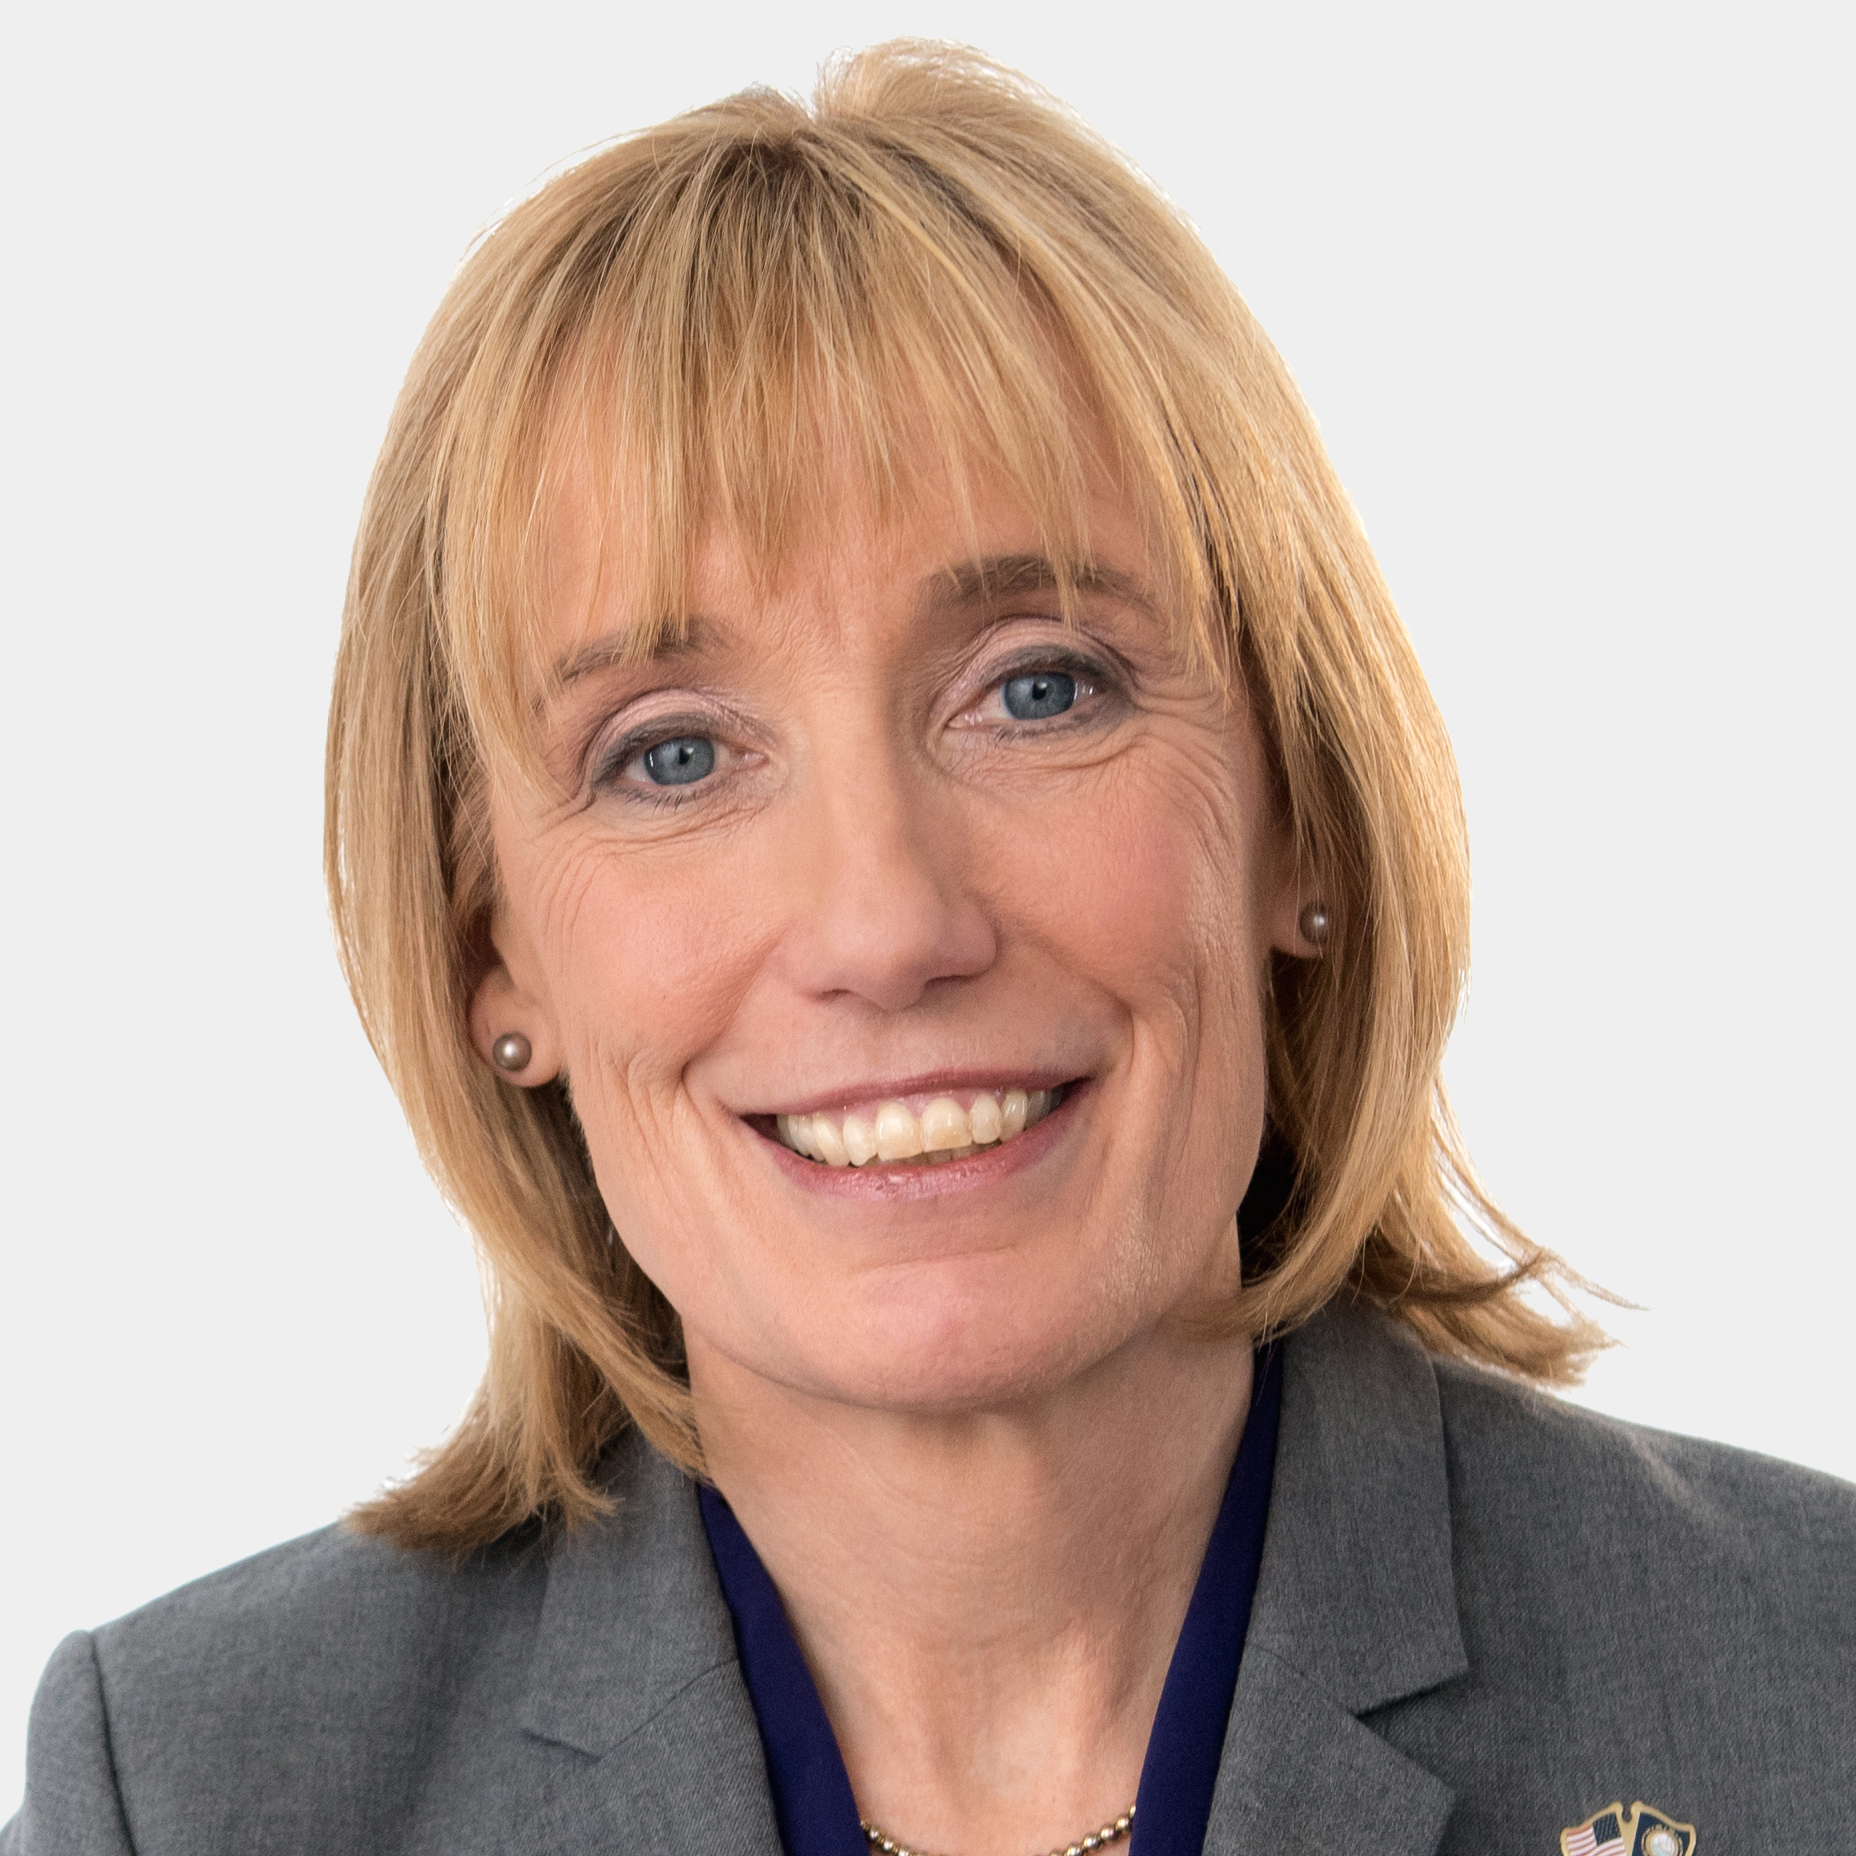 Maggie Hassan - U.S. Senator from New Hampshire